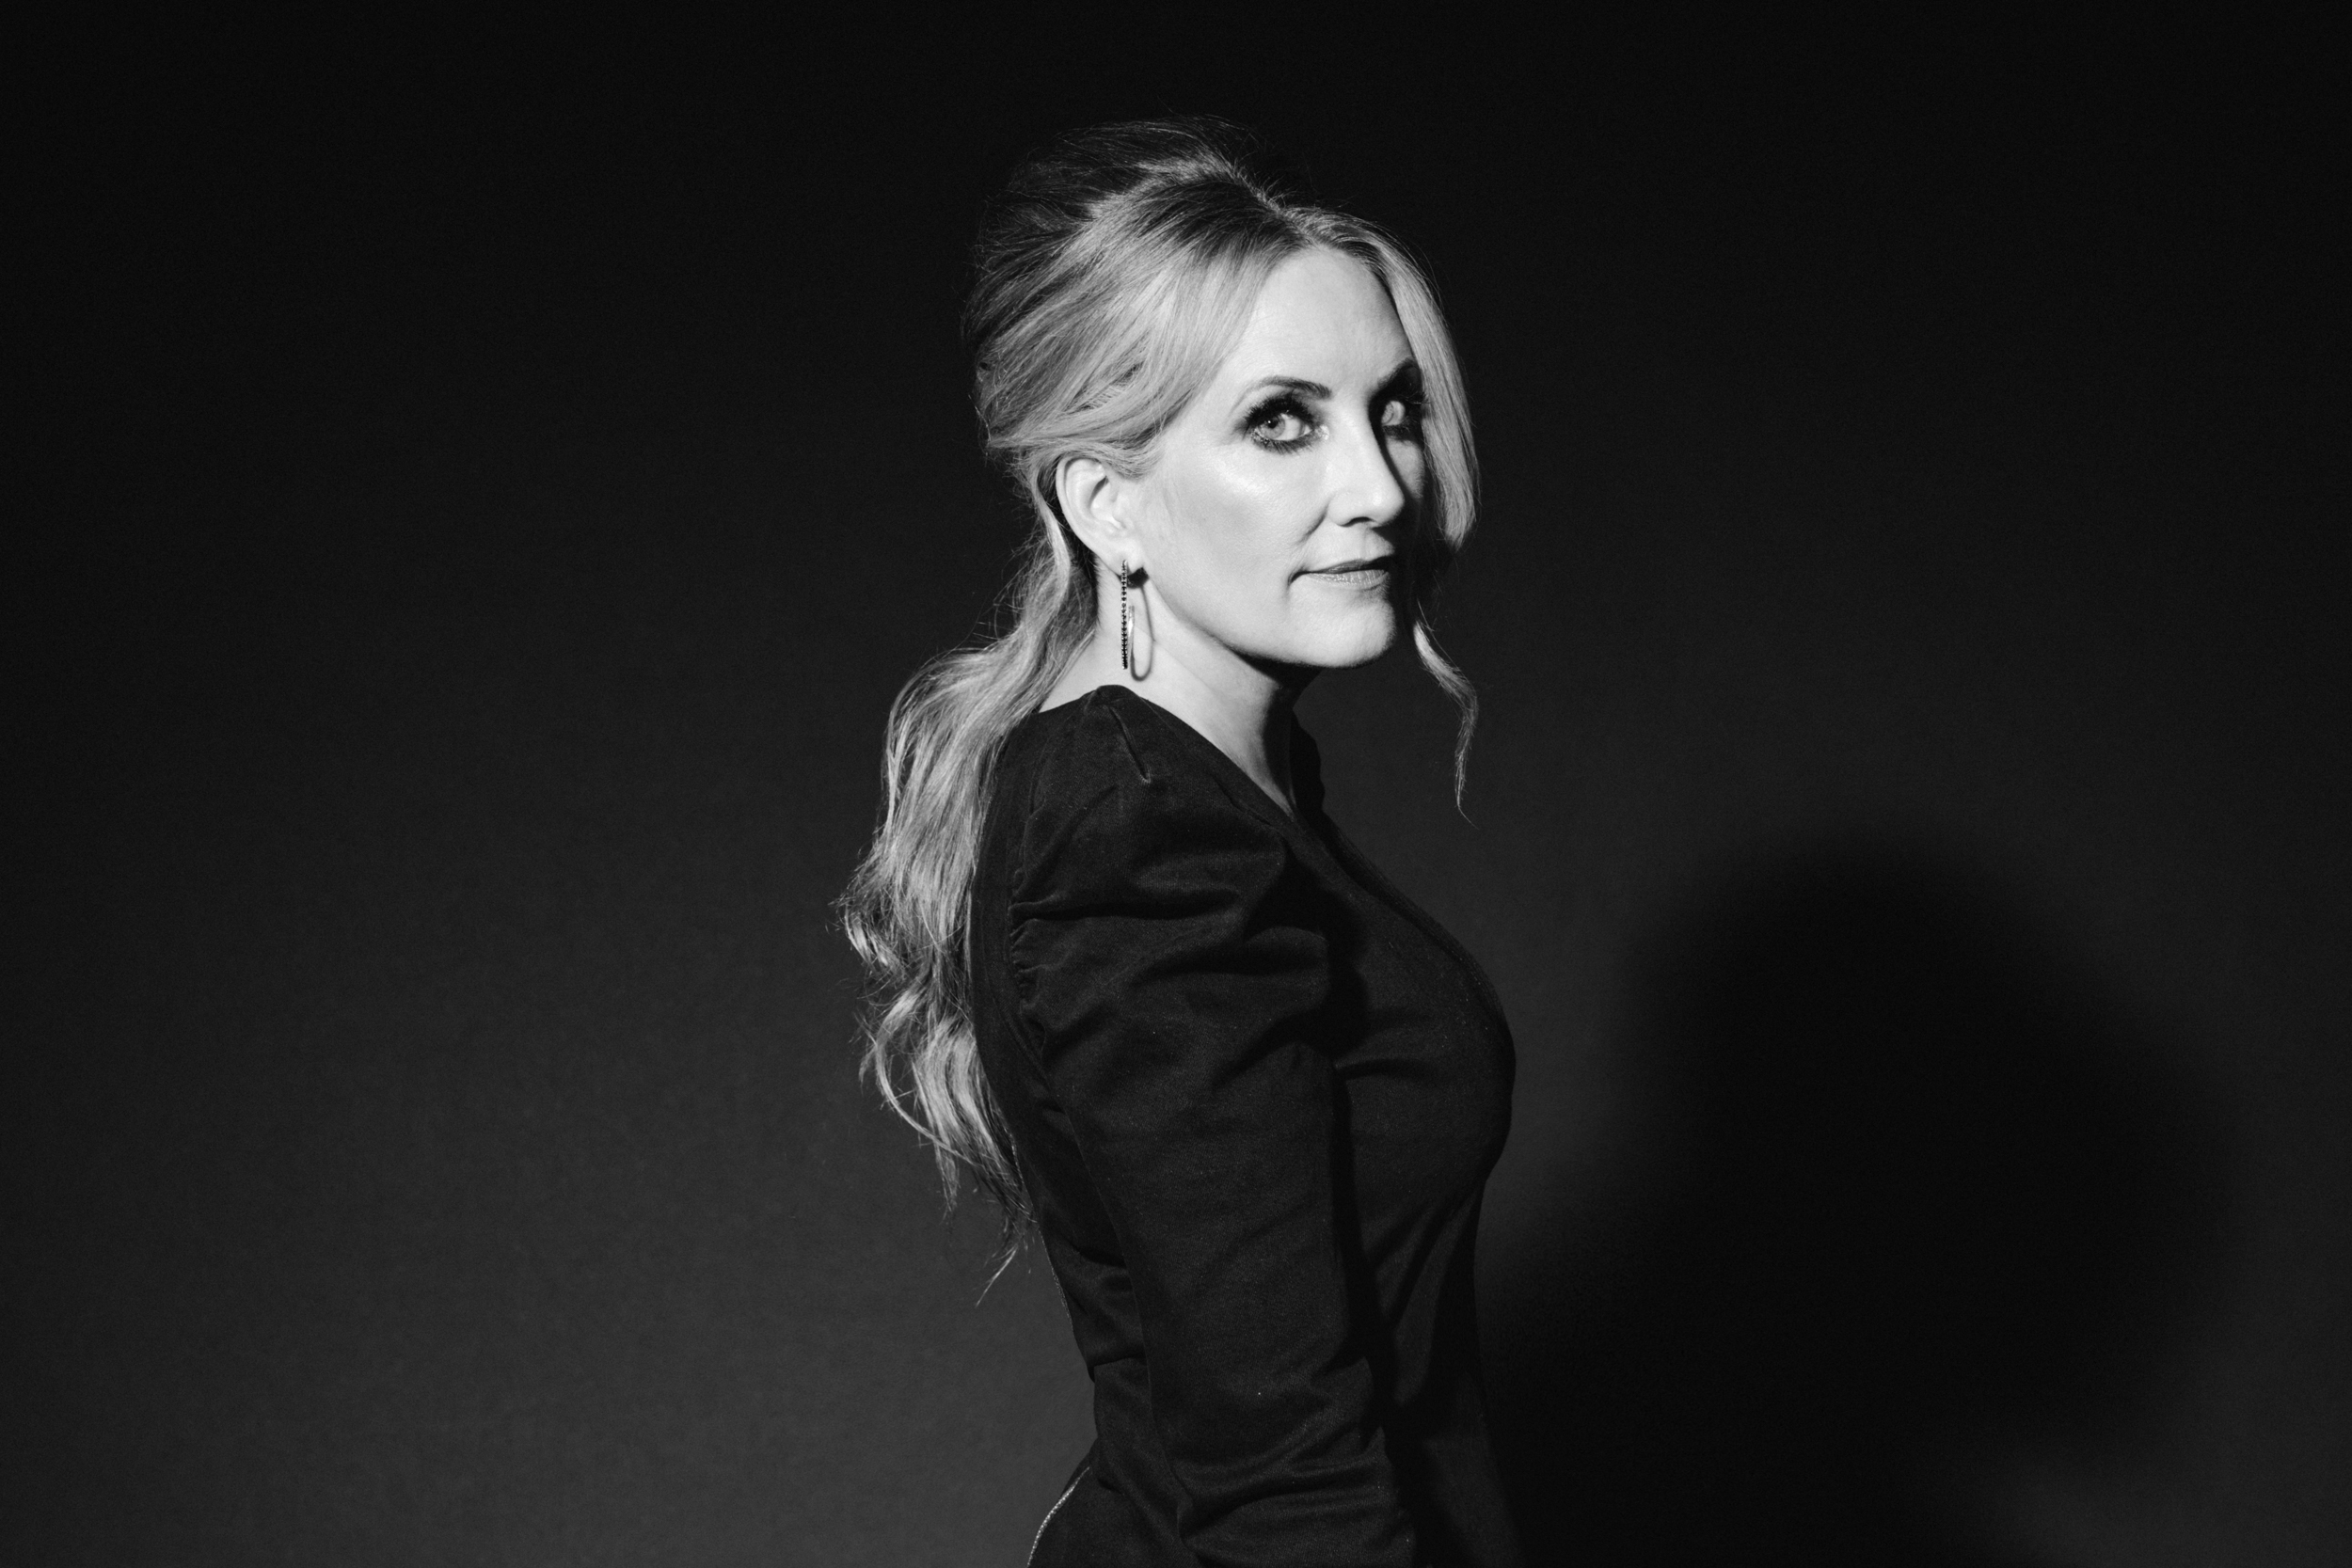 _images_uploads_gallery_20170711_ATORecords_LeeAnnWomack_EbruYildiz_1911.jpg